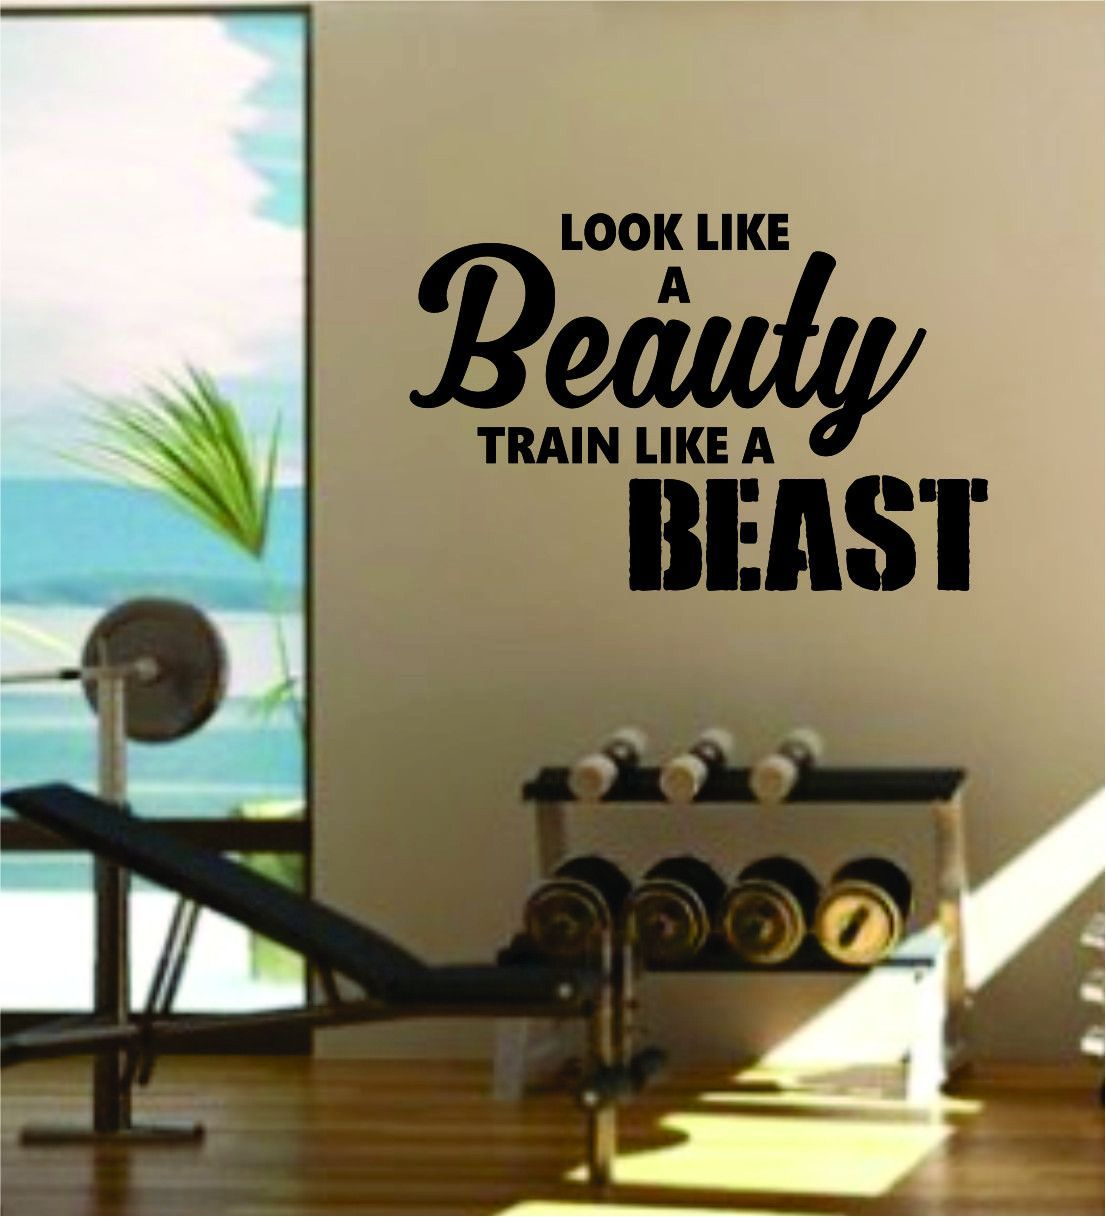 Gym Decal Look Like a Beauty Train Like a Beast Fitness Wall Decal Exercise Decor Gym Decor Fitness Motivation Workout Inspirational Quotes